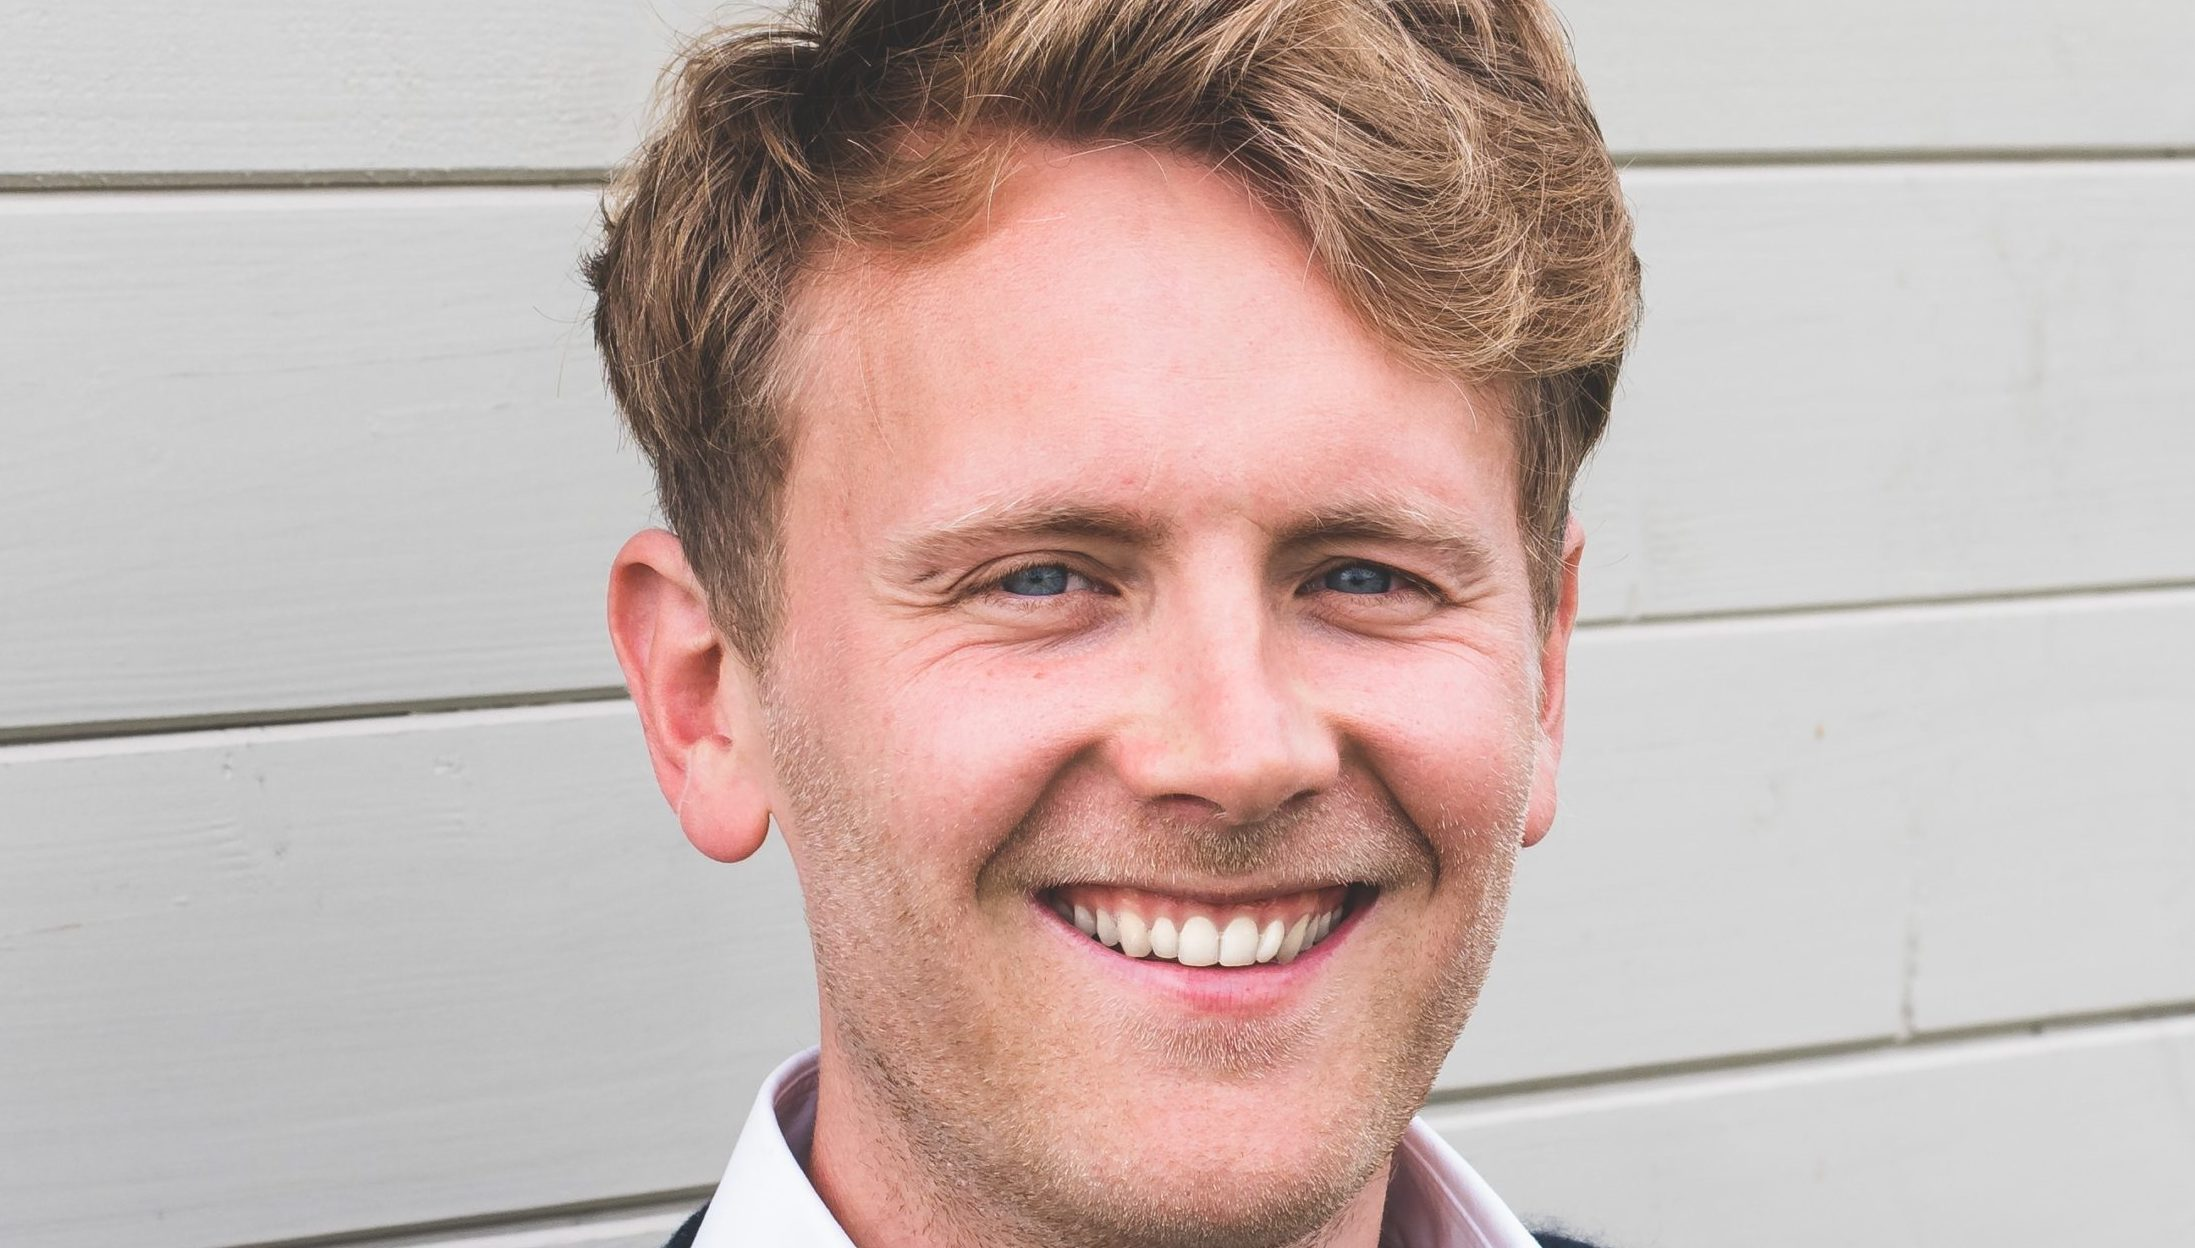 Andrew Fyfe began to form the idea for his new venture while at university.